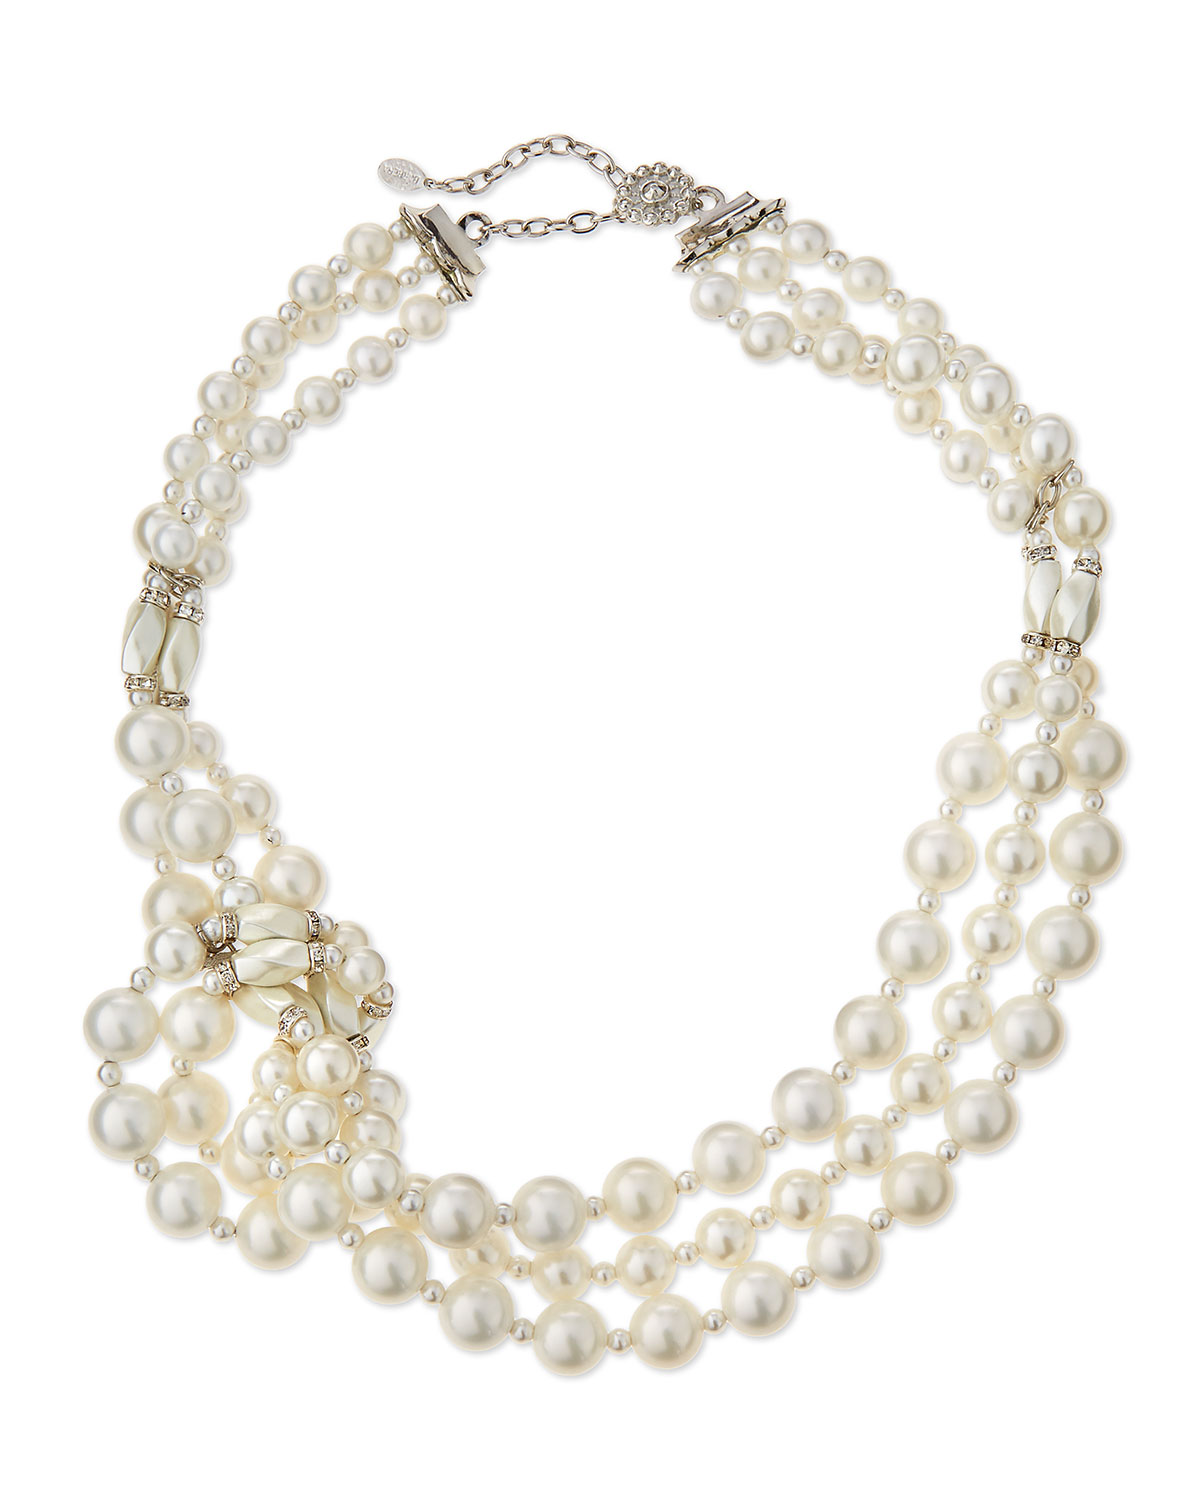 Knotted Three-Strand Simulated Pearl Necklace